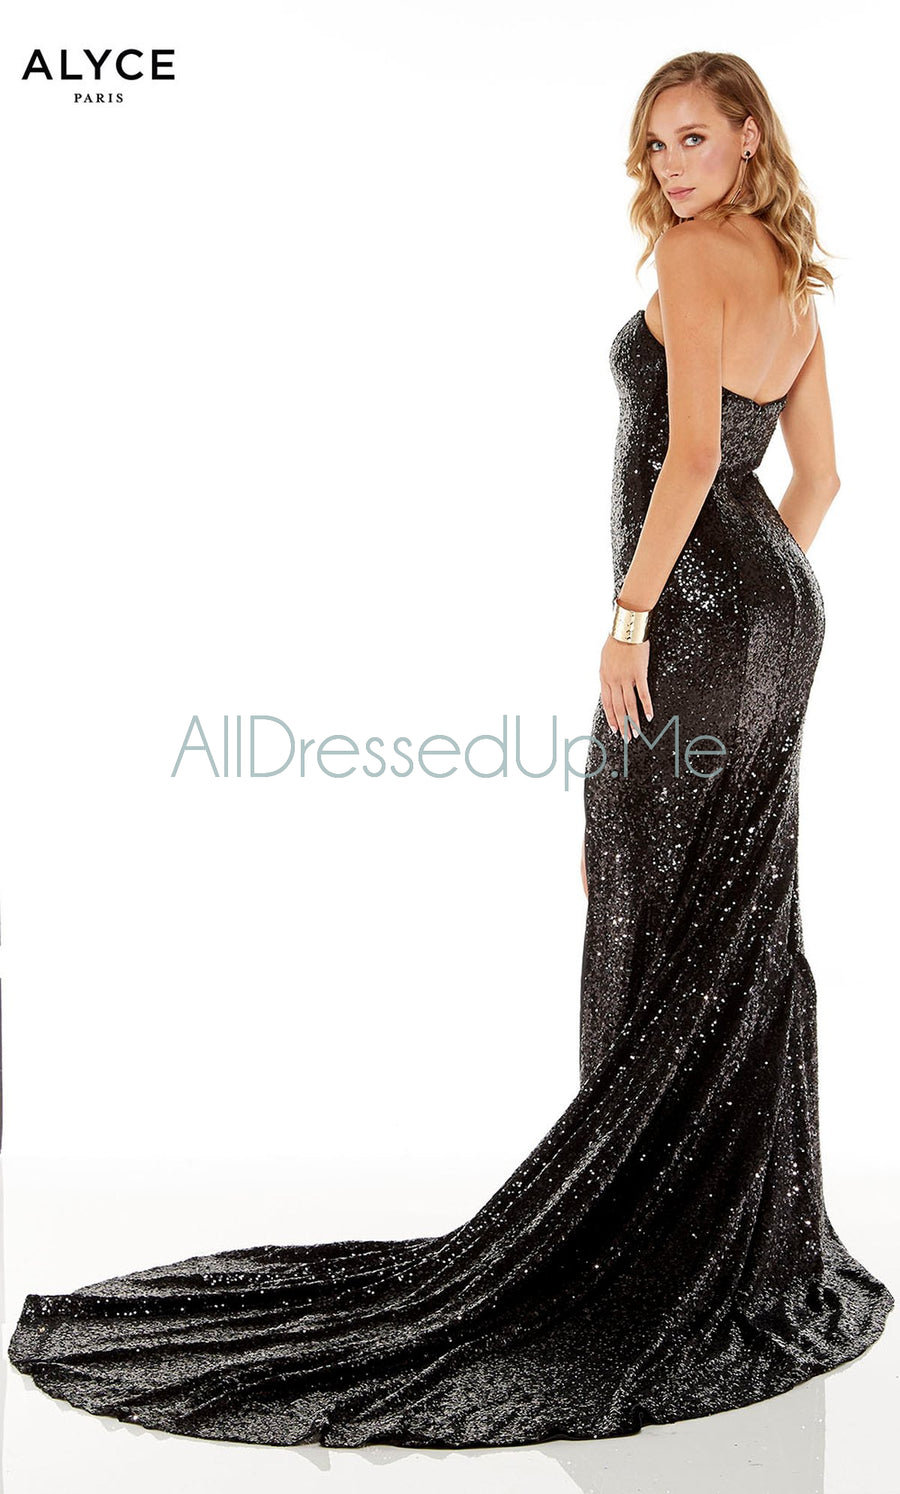 Alyce Paris - 60820 - All Dressed Up, Prom/Party Dress - - Dresses Two Piece Cut Out Sweetheart Halter Low Back High Neck Print Beaded Chiffon Jersey Fitted Sexy Satin Lace Jeweled Sparkle Shimmer Sleeveless Stunning Gorgeous Modest See Through Transparent Glitter Special Occasions Event Chattanooga Hixson Shops Boutiques Tennessee TN Georgia GA MSRP Lowest Prices Sale Discount